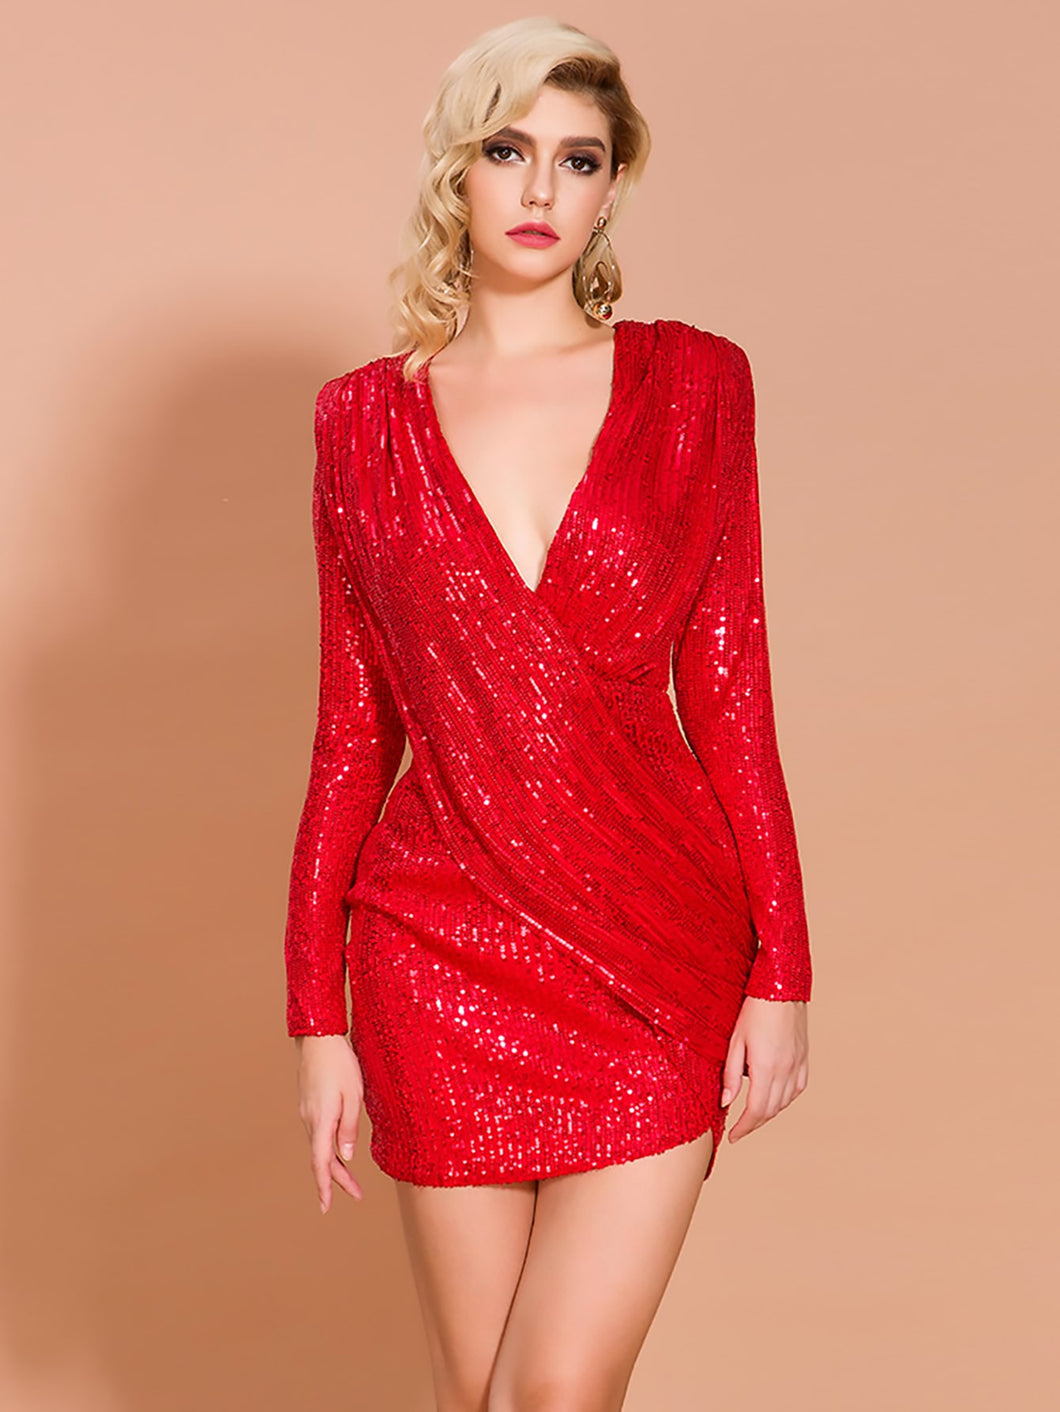 DRESS Zip Back Plunge Neck Sequin Bodycon Dress - EK CHIC